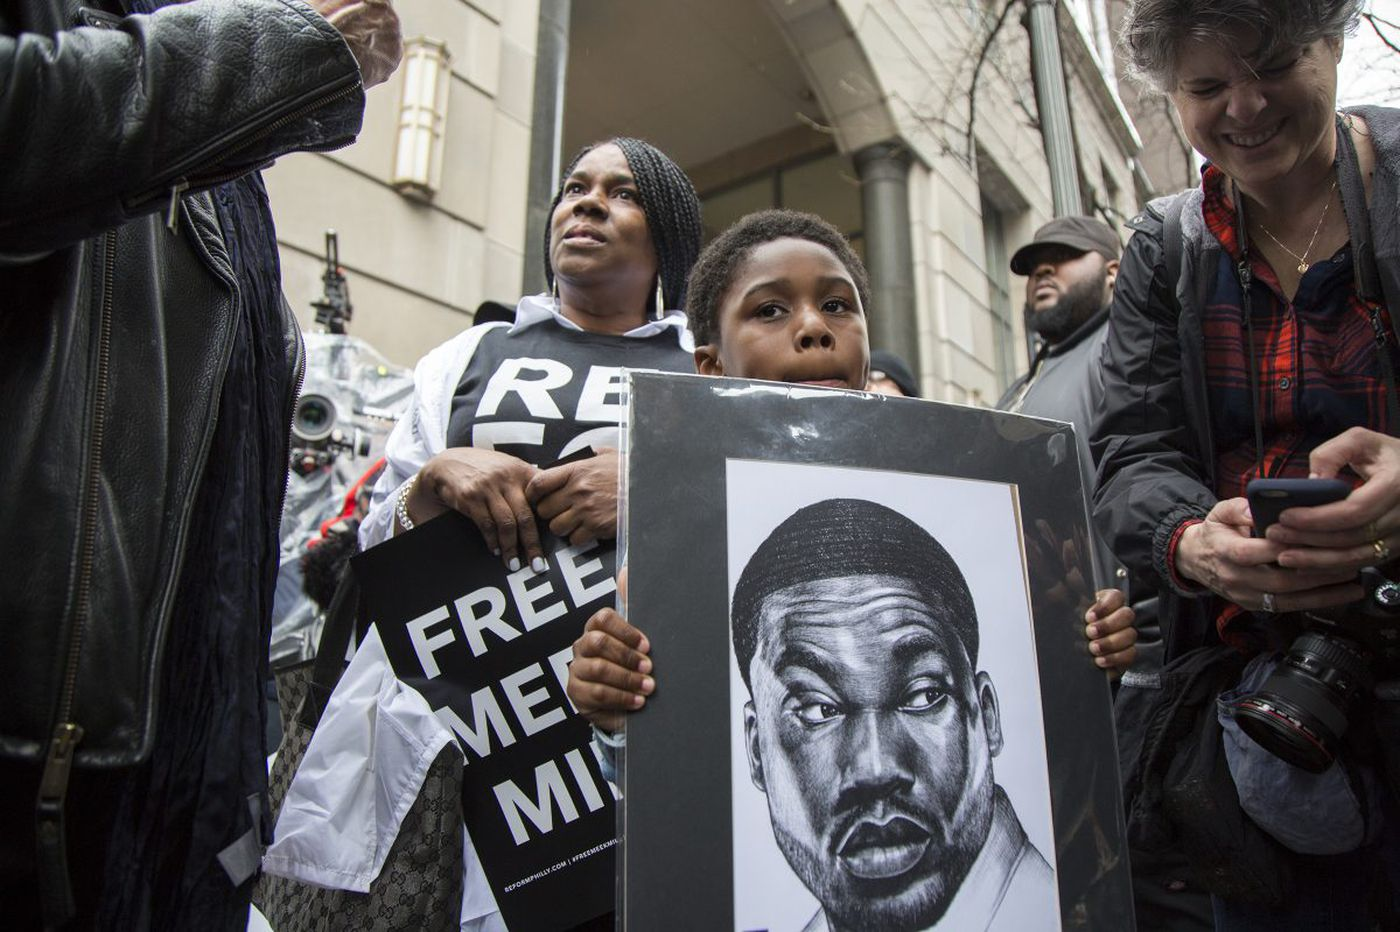 Meek Mill's not alone  Study finds 'indefensible' overuse of